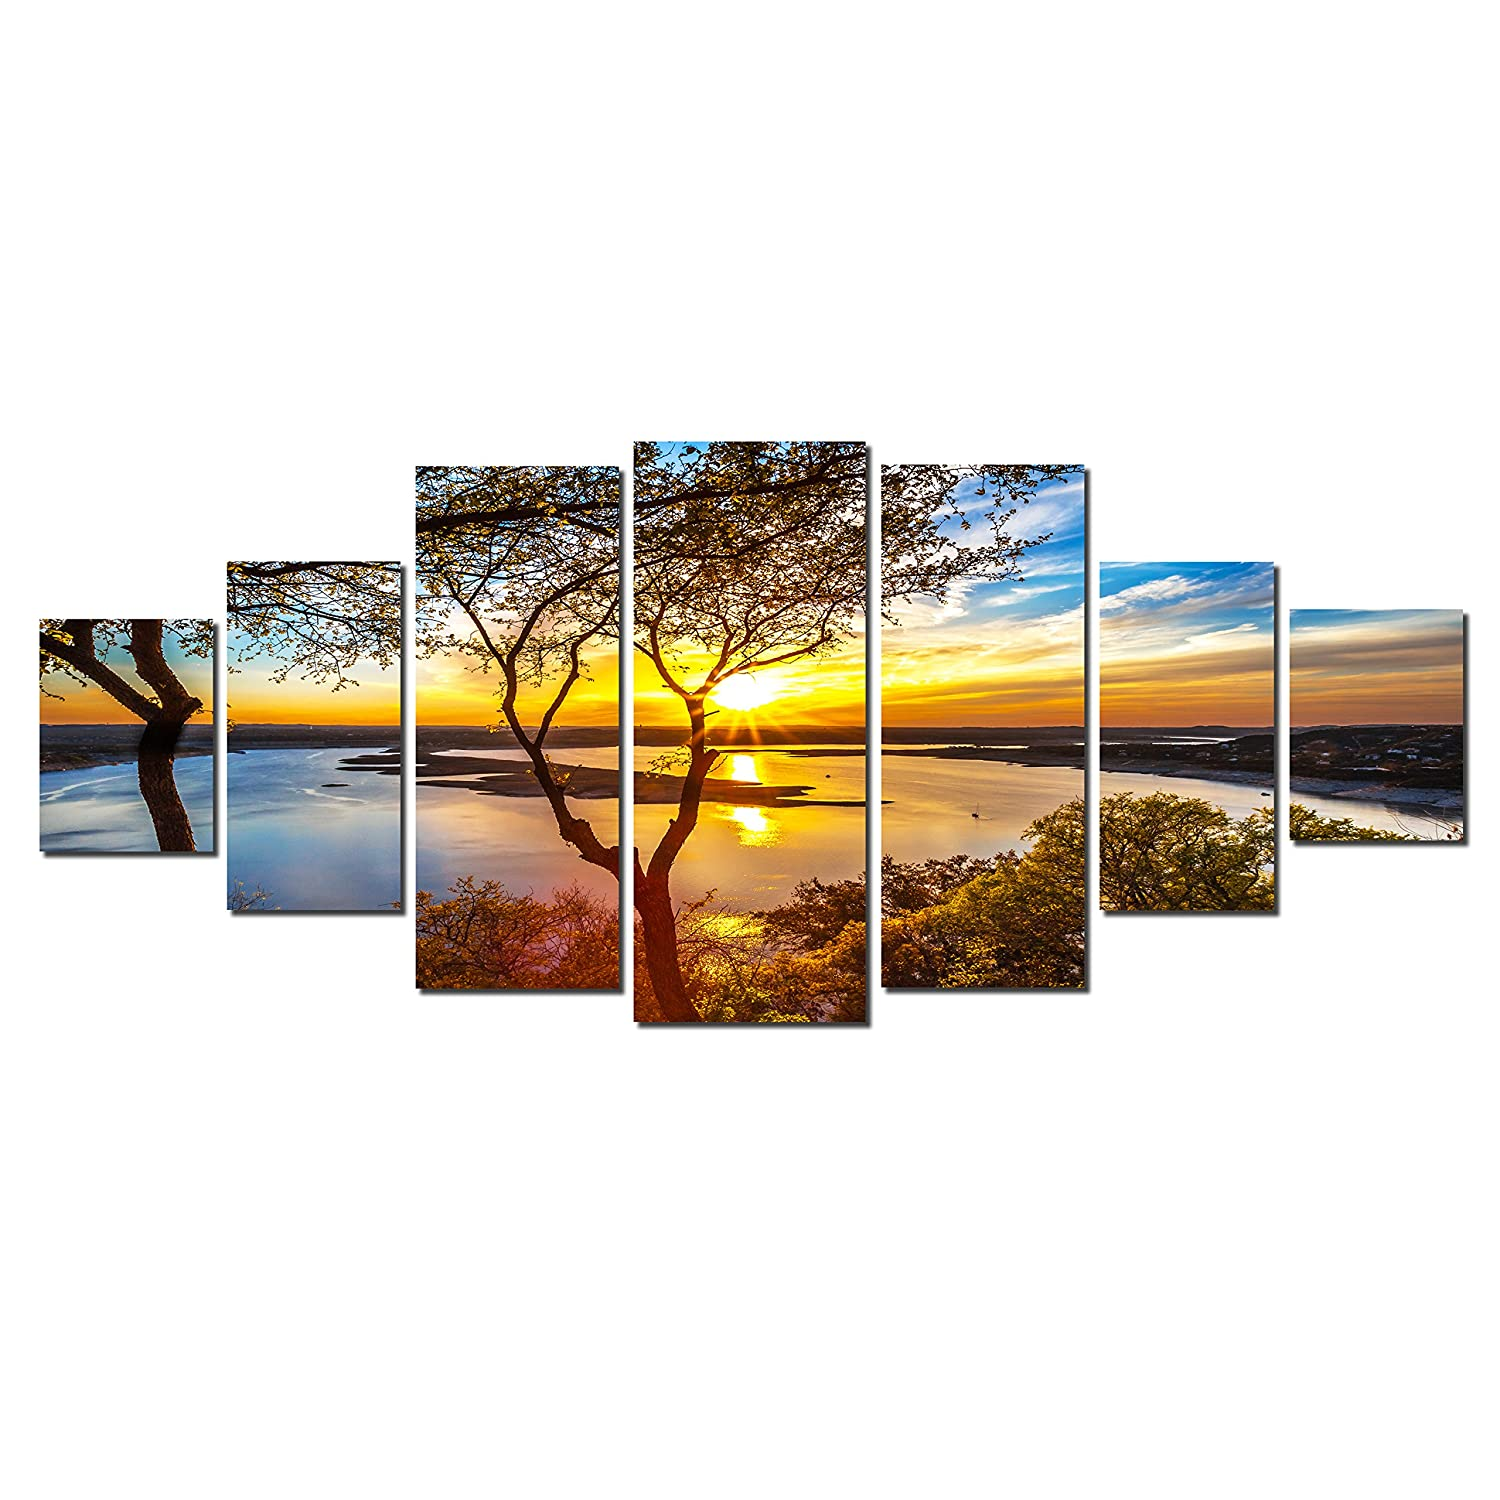 Startonight Glow in the Dark, Huge Canvas Wall Art Sunrise On The Lake, Home Decor, Dual View Surprise Artwork Modern Framed Wall Art Set of 7 Panels Total 100 x 240 cm B01MRC8YFC  ゴールド Extra Large